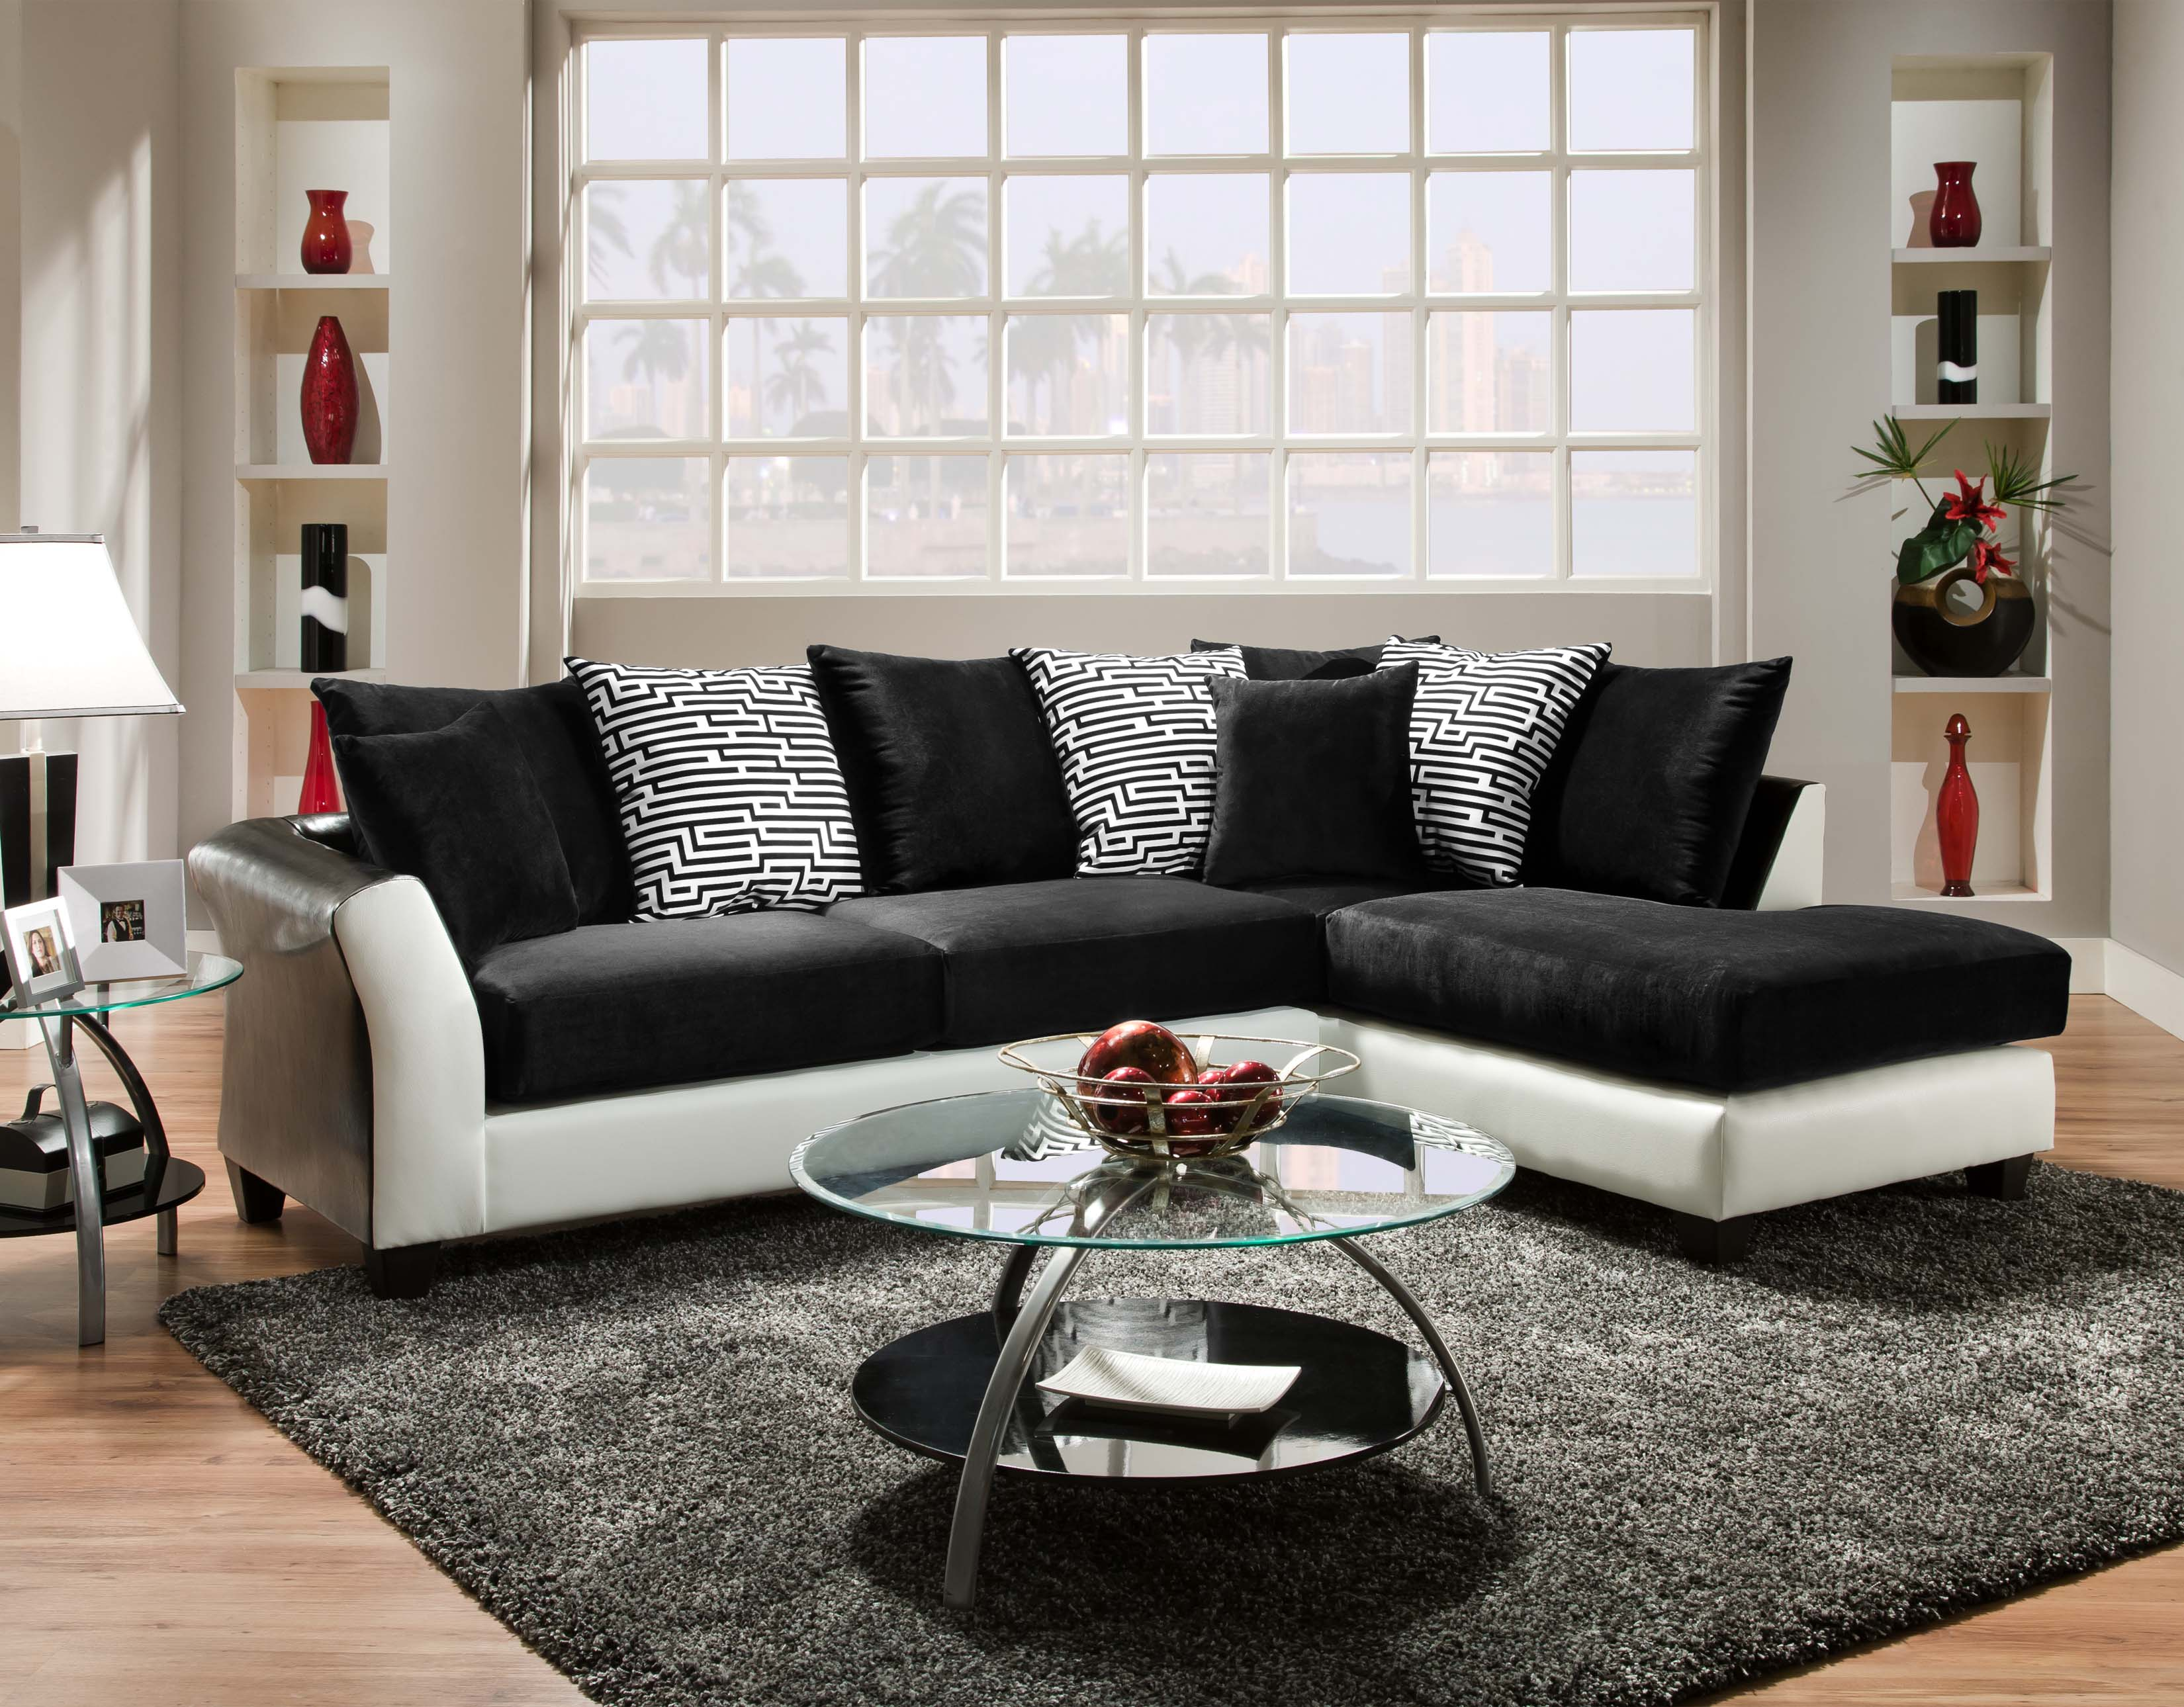 Featured Friday: ZigZag Sectional